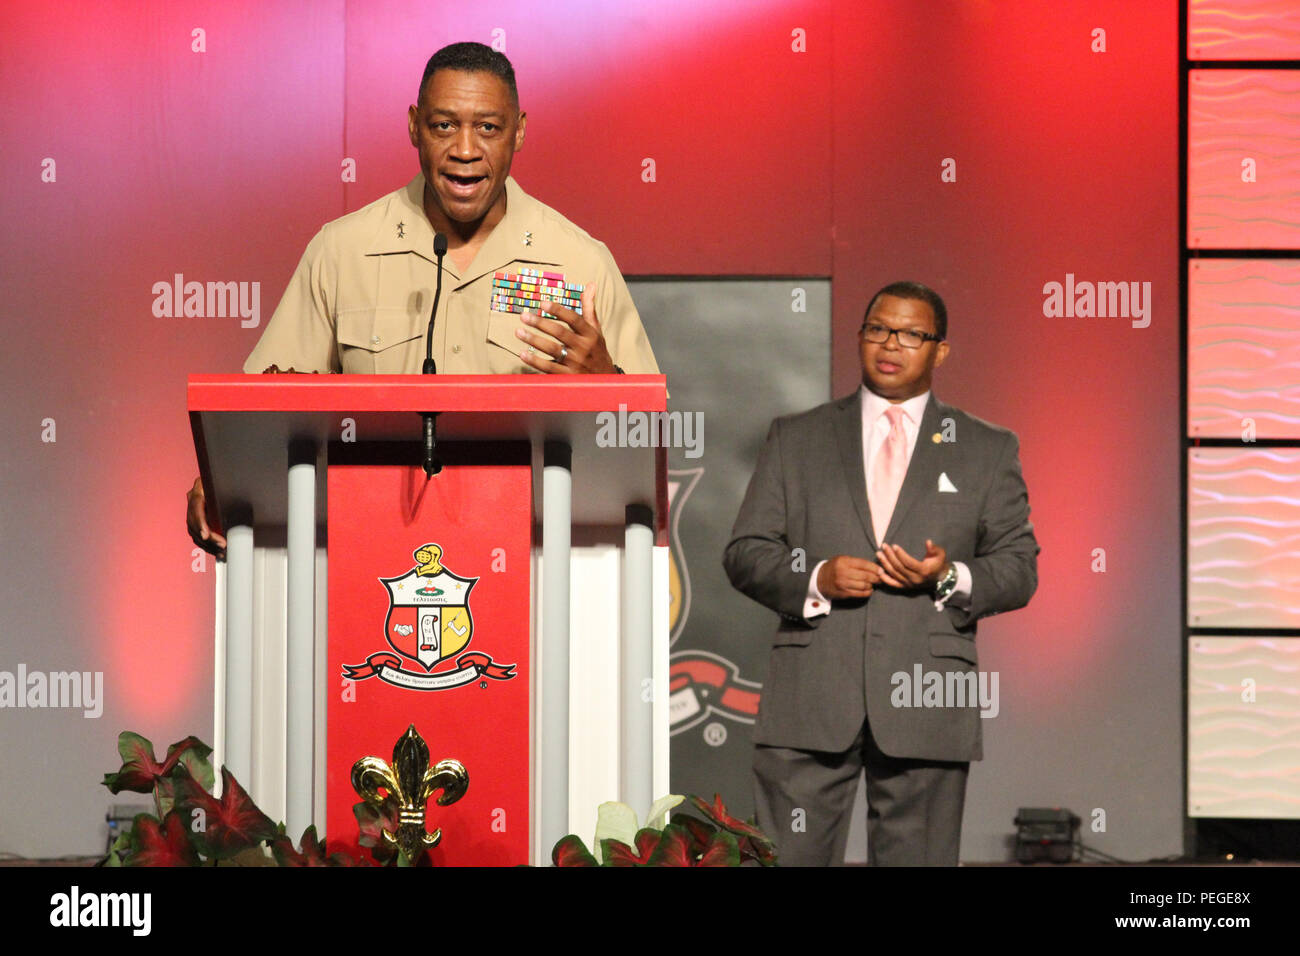 Maj. Gen. Craig Crenshaw, Headquarters Marine Corps assistant deputy commandant for installations and logistics, speaks after receiving the Kappa Alpha Psi Fraternity Partner Appreciation Award during the Kappa Alpha Psi Fraternity, Inc., 82nd Grand Chapter Meeting held in New Orleans, Aug. 13, 2015. Being among one of few predominately African-American fraternities, the organization was founded on January 5, 1911 and was known to never exclude a student from membership because of race, creed, or national origin.   (U.S. Marine Corps photo by Sgt. Rubin J. Tan) - Stock Image